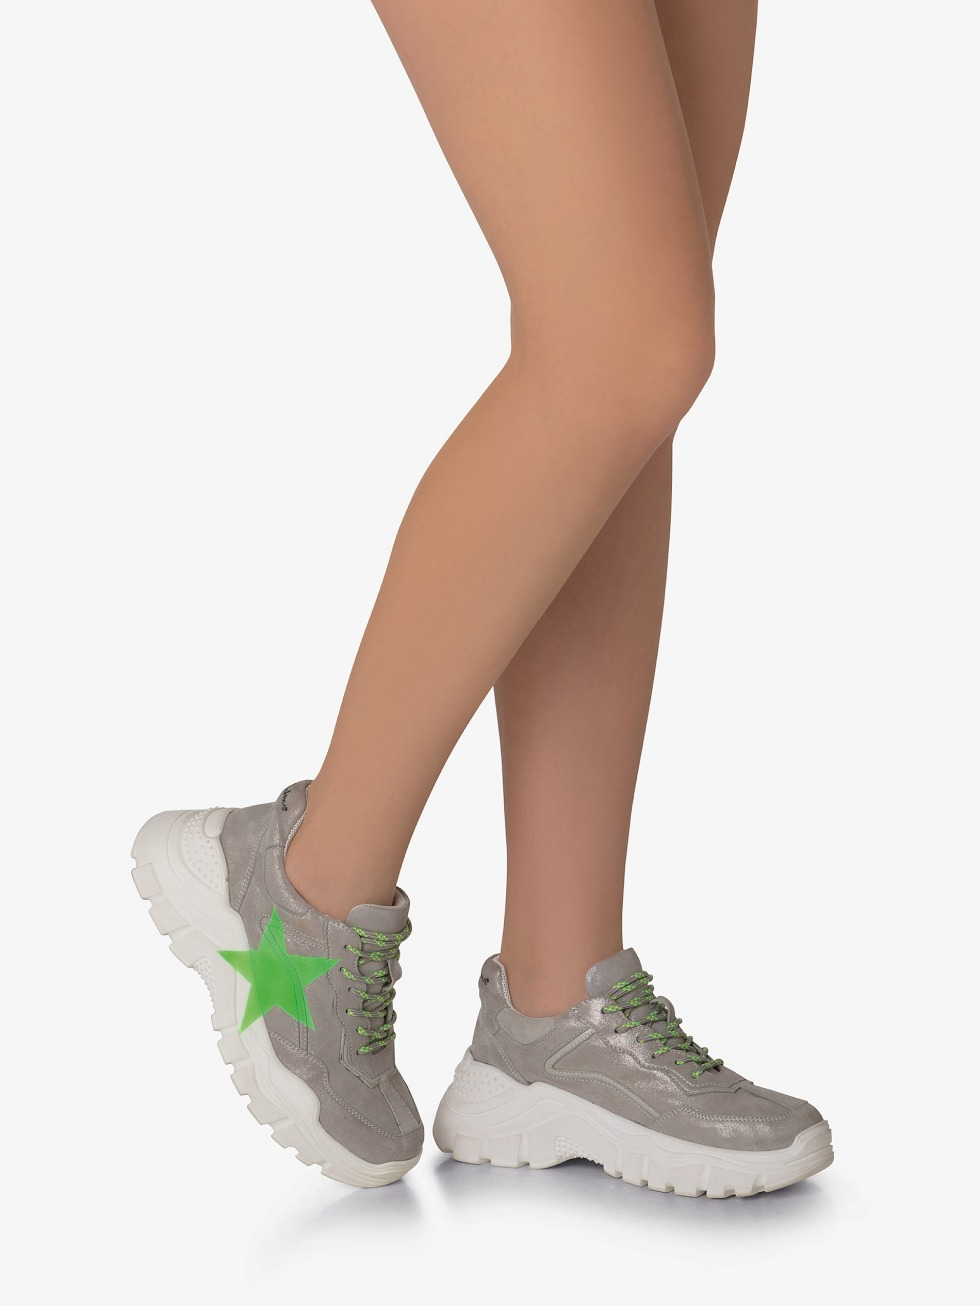 Aviations Chunky Sneakers - Stardust Neon Green Star